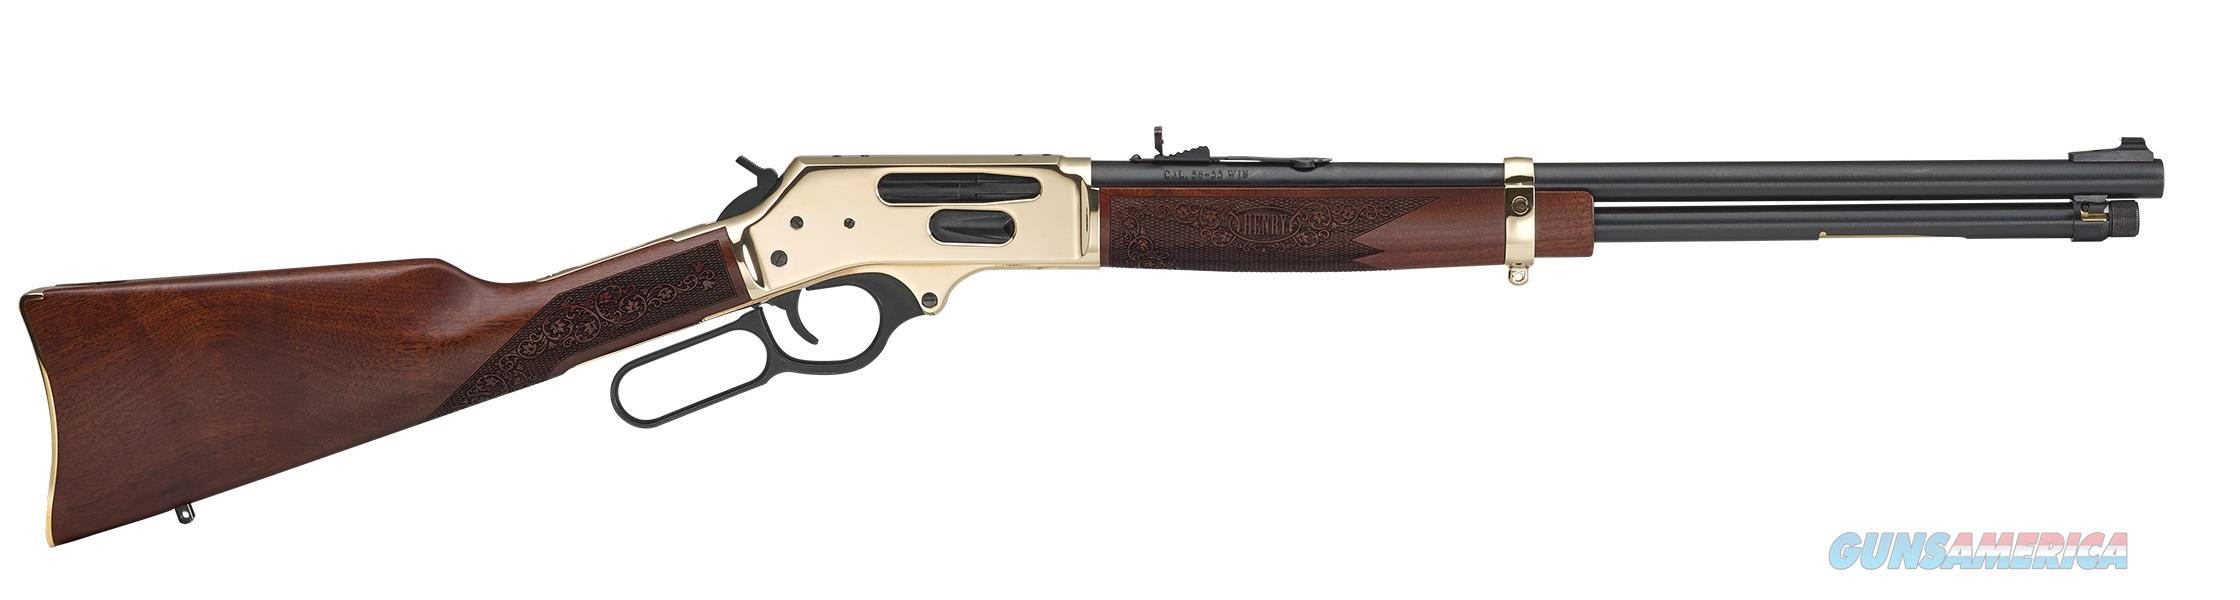 "Henry Side Gate Lever Action .30-30 20"" 5 Rds H024-3030   Guns > Rifles > Henry Rifle Company"